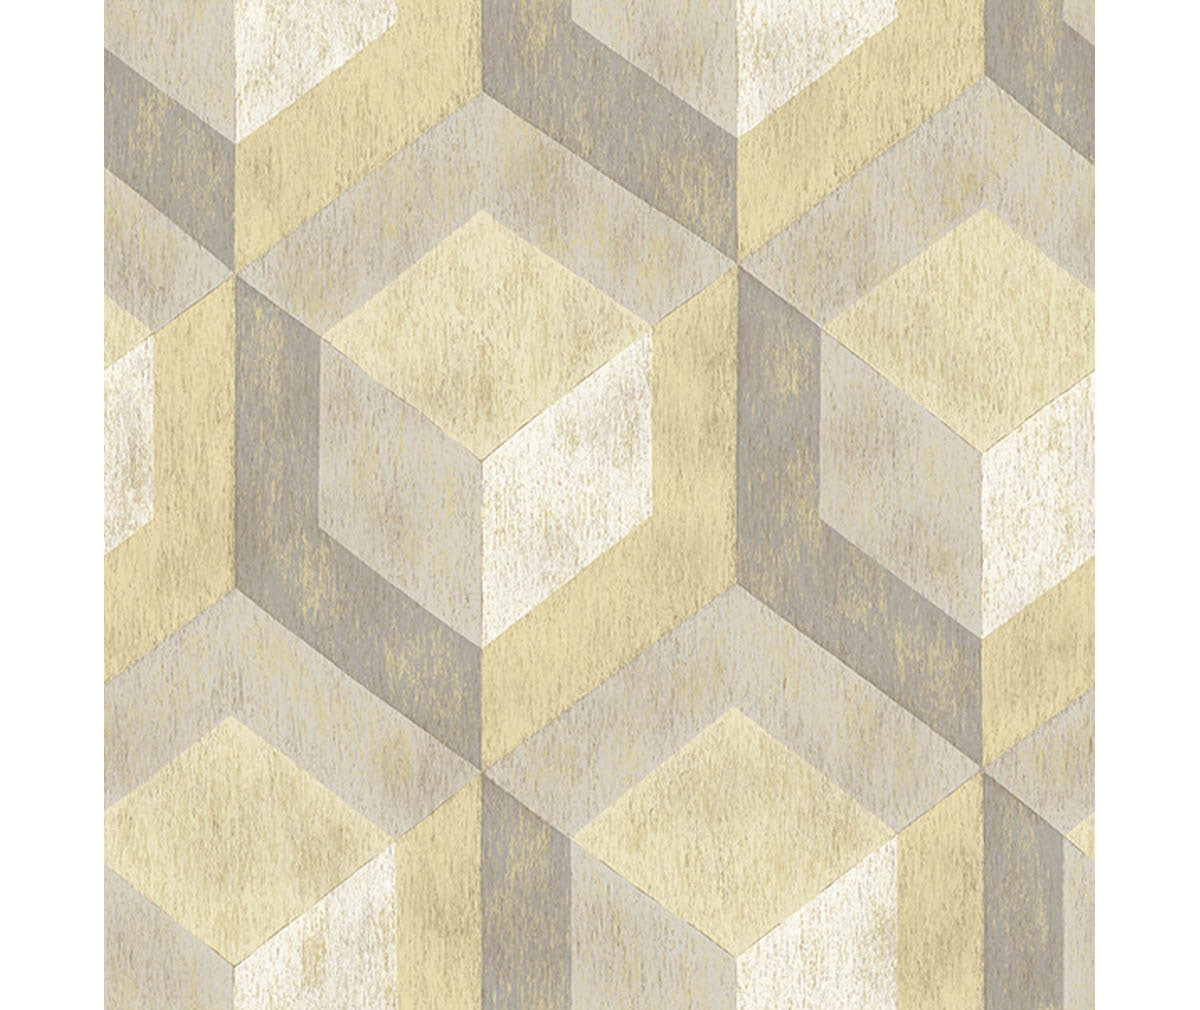 Rustic Wood Tile Honey Geometric Wallpaper available at Barrydowne Paint